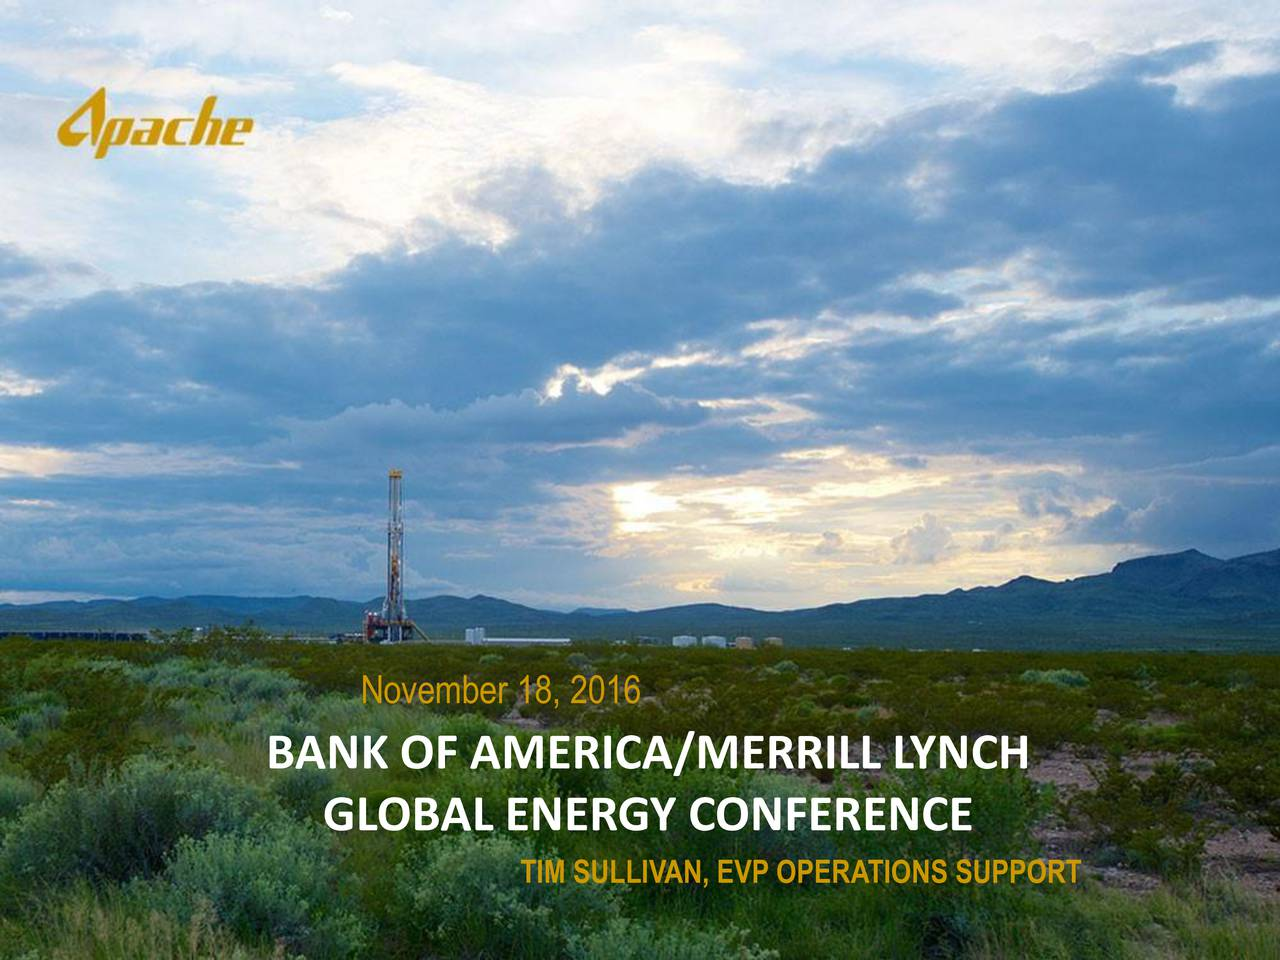 BANK OF AMERICA/MERRILL LYNCH GLOBAL ENERGY CONFERENCE TIM SULLIVAN, EVP OPERATIONS SUPPORT